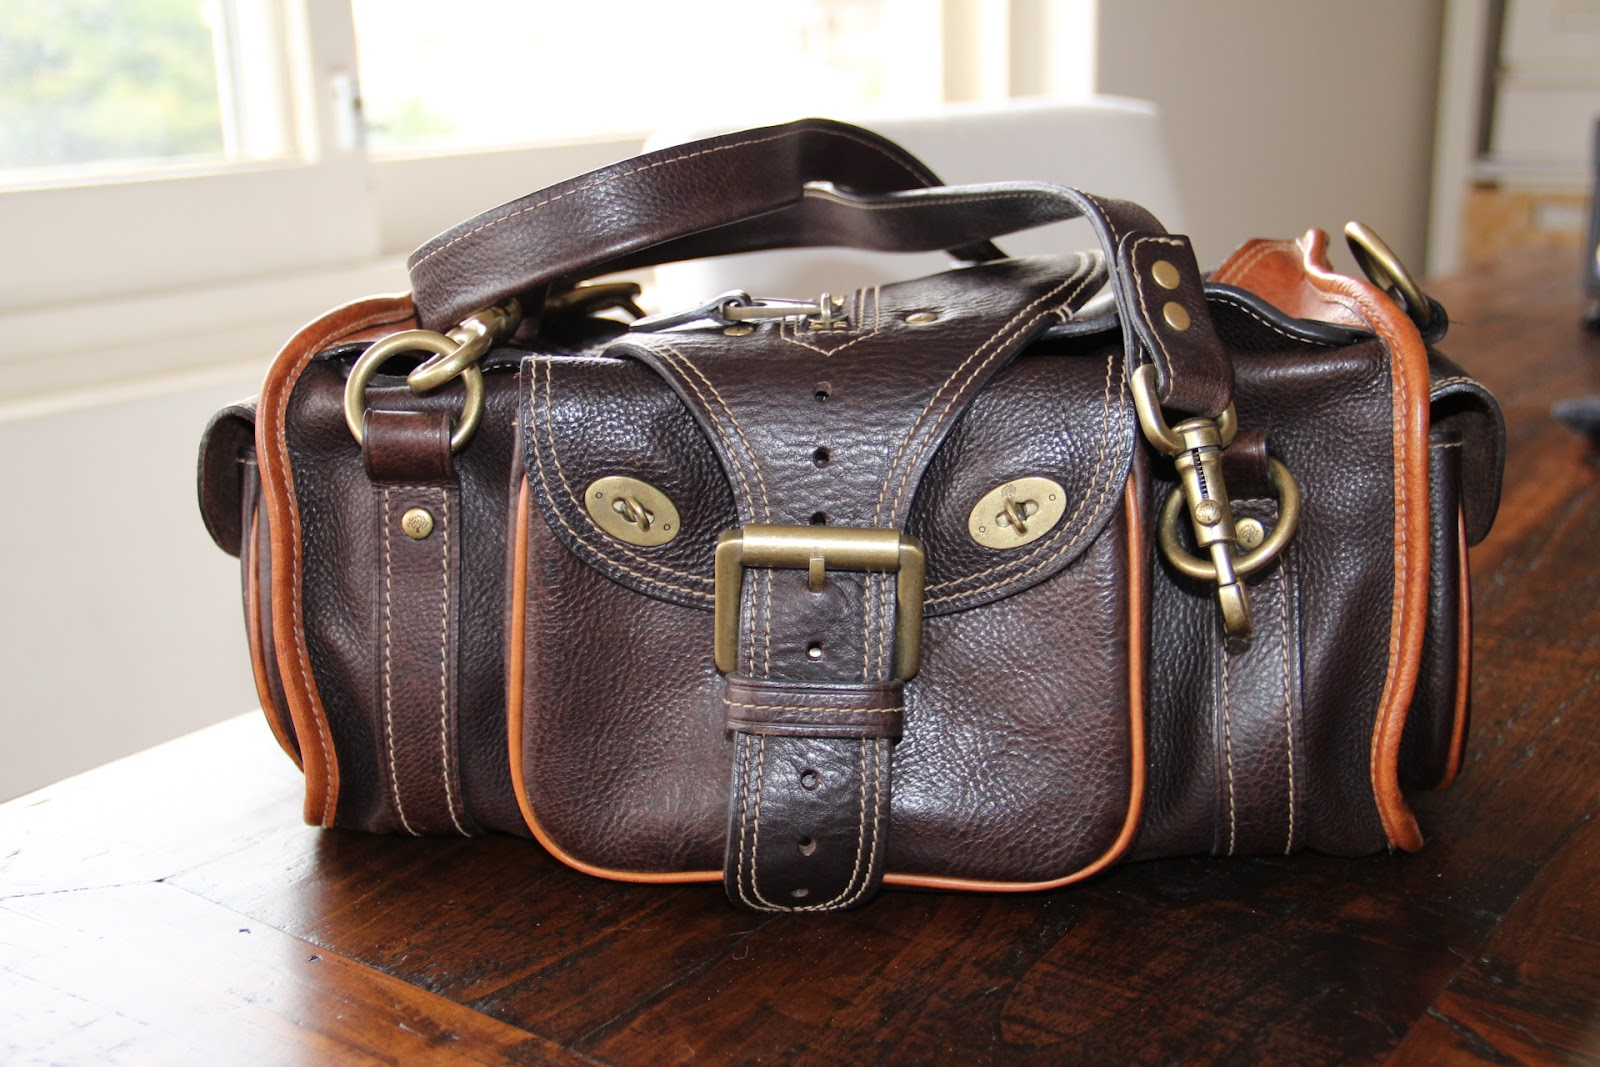 07b0b09c7640 ... sweden mulberry two tone emmy darwin satchel bag purse pu1300 ebay. my  cats say meow